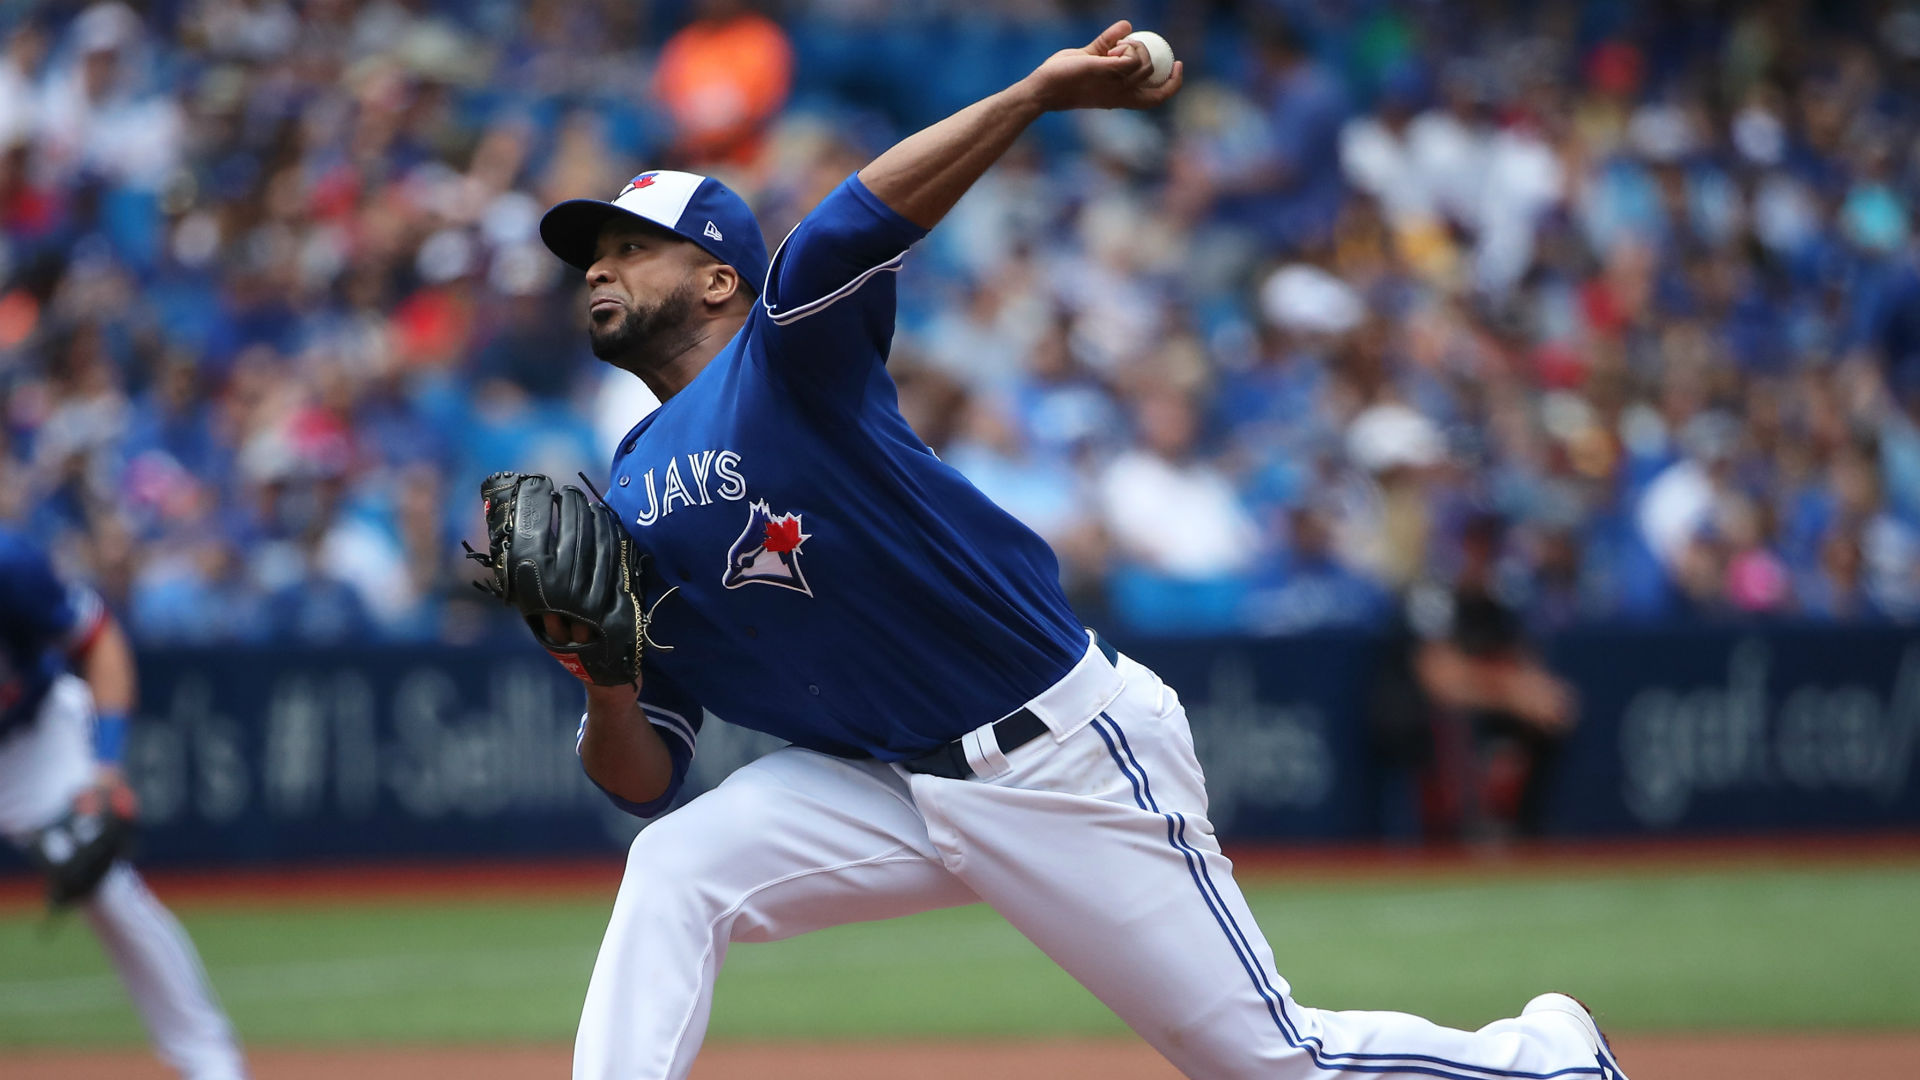 Blue Jays trade left-hander Liriano, righty reliever Smith at deadline